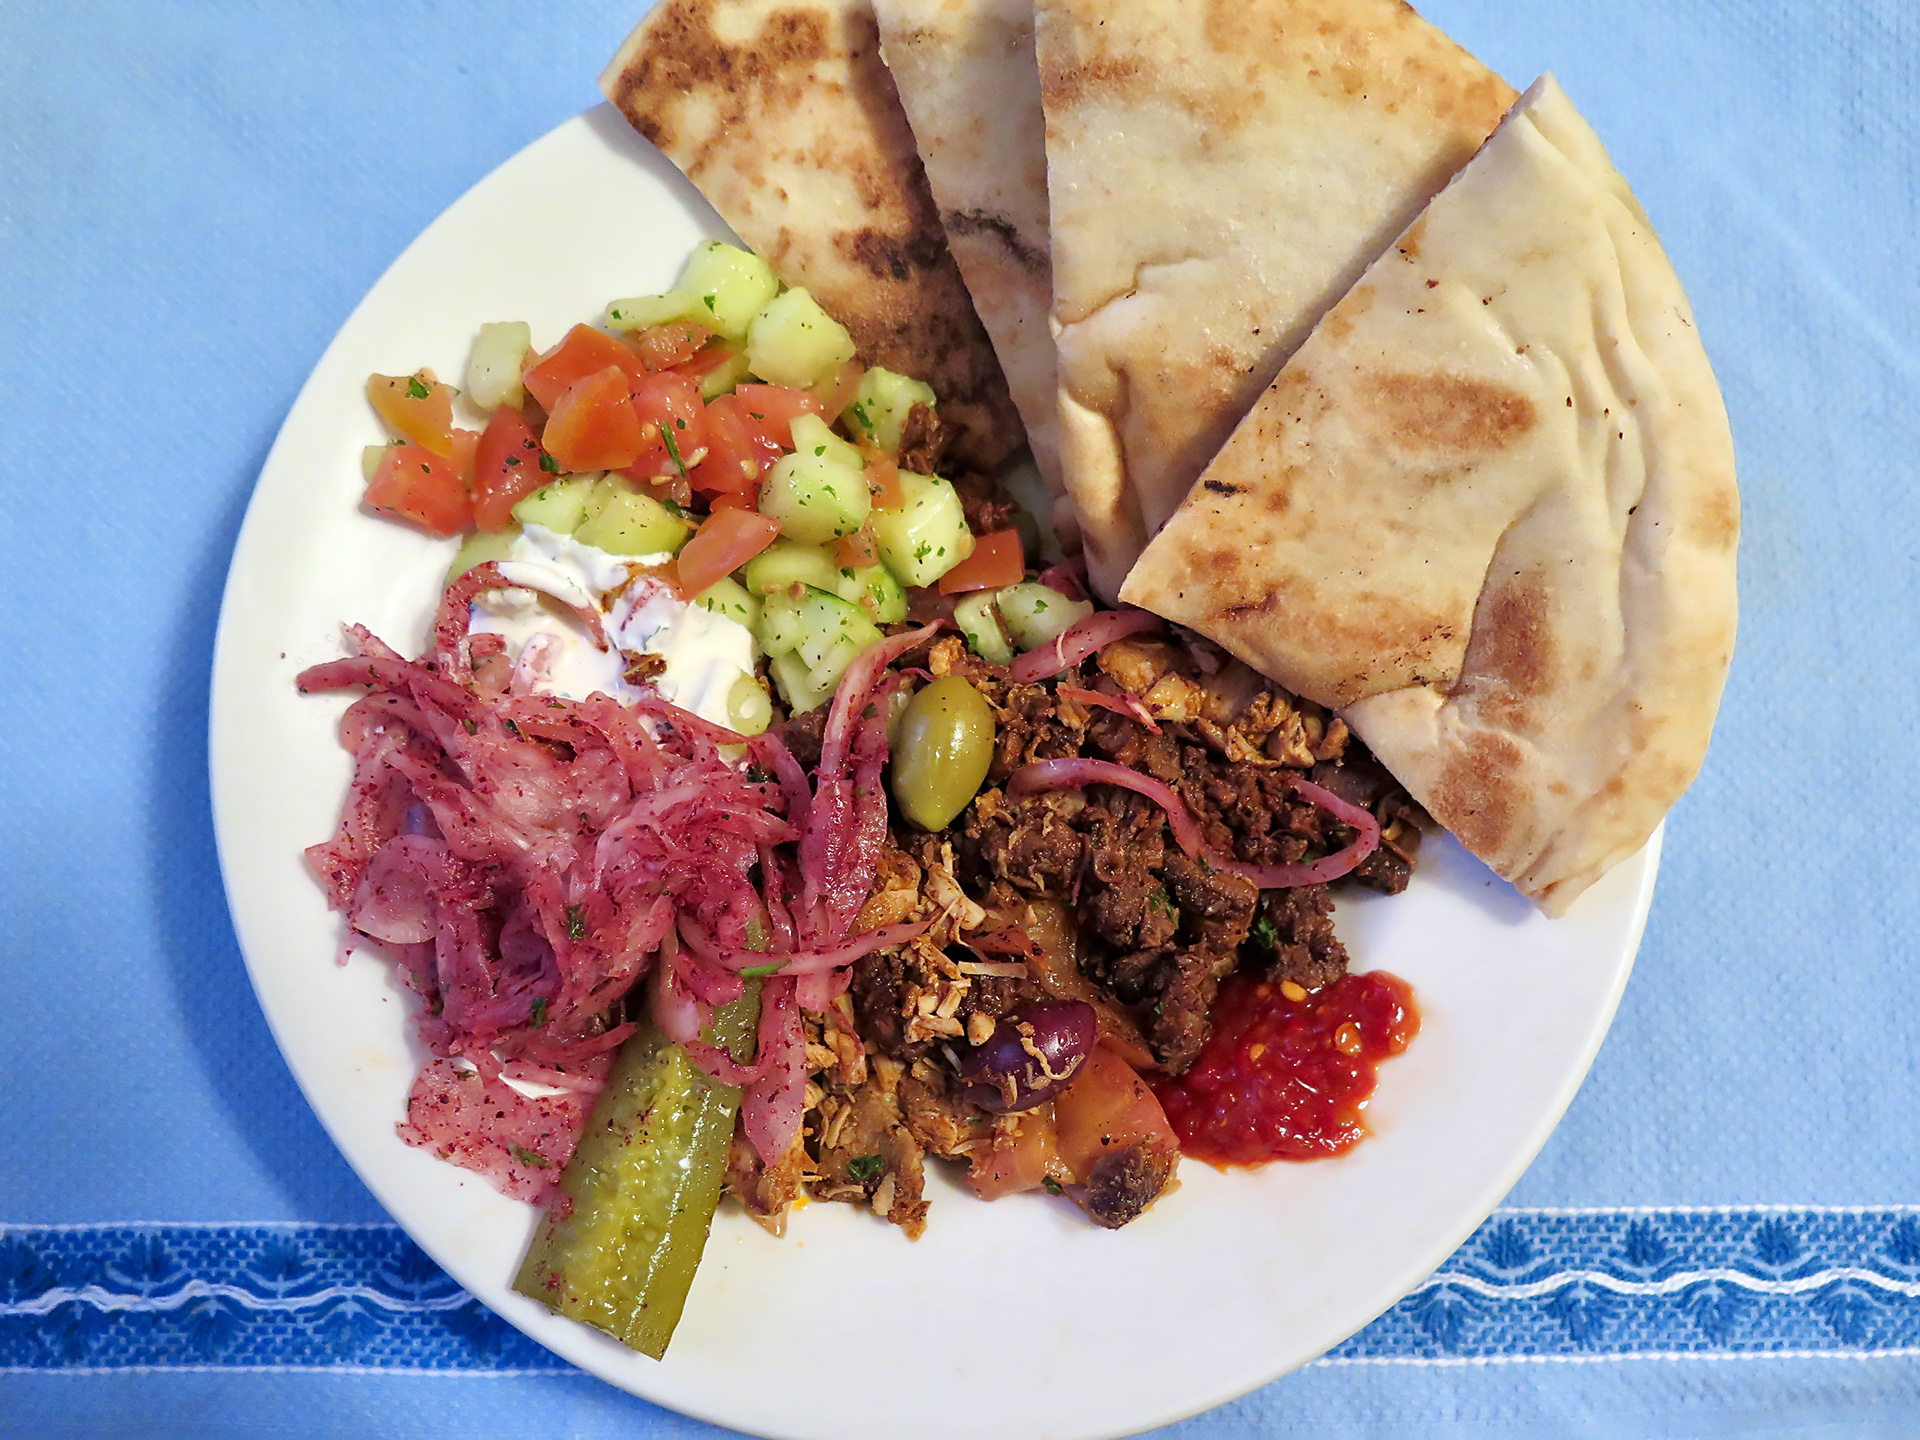 A midweek meal at Zaytoon will fit the bill (and this isn't even the full portion!).